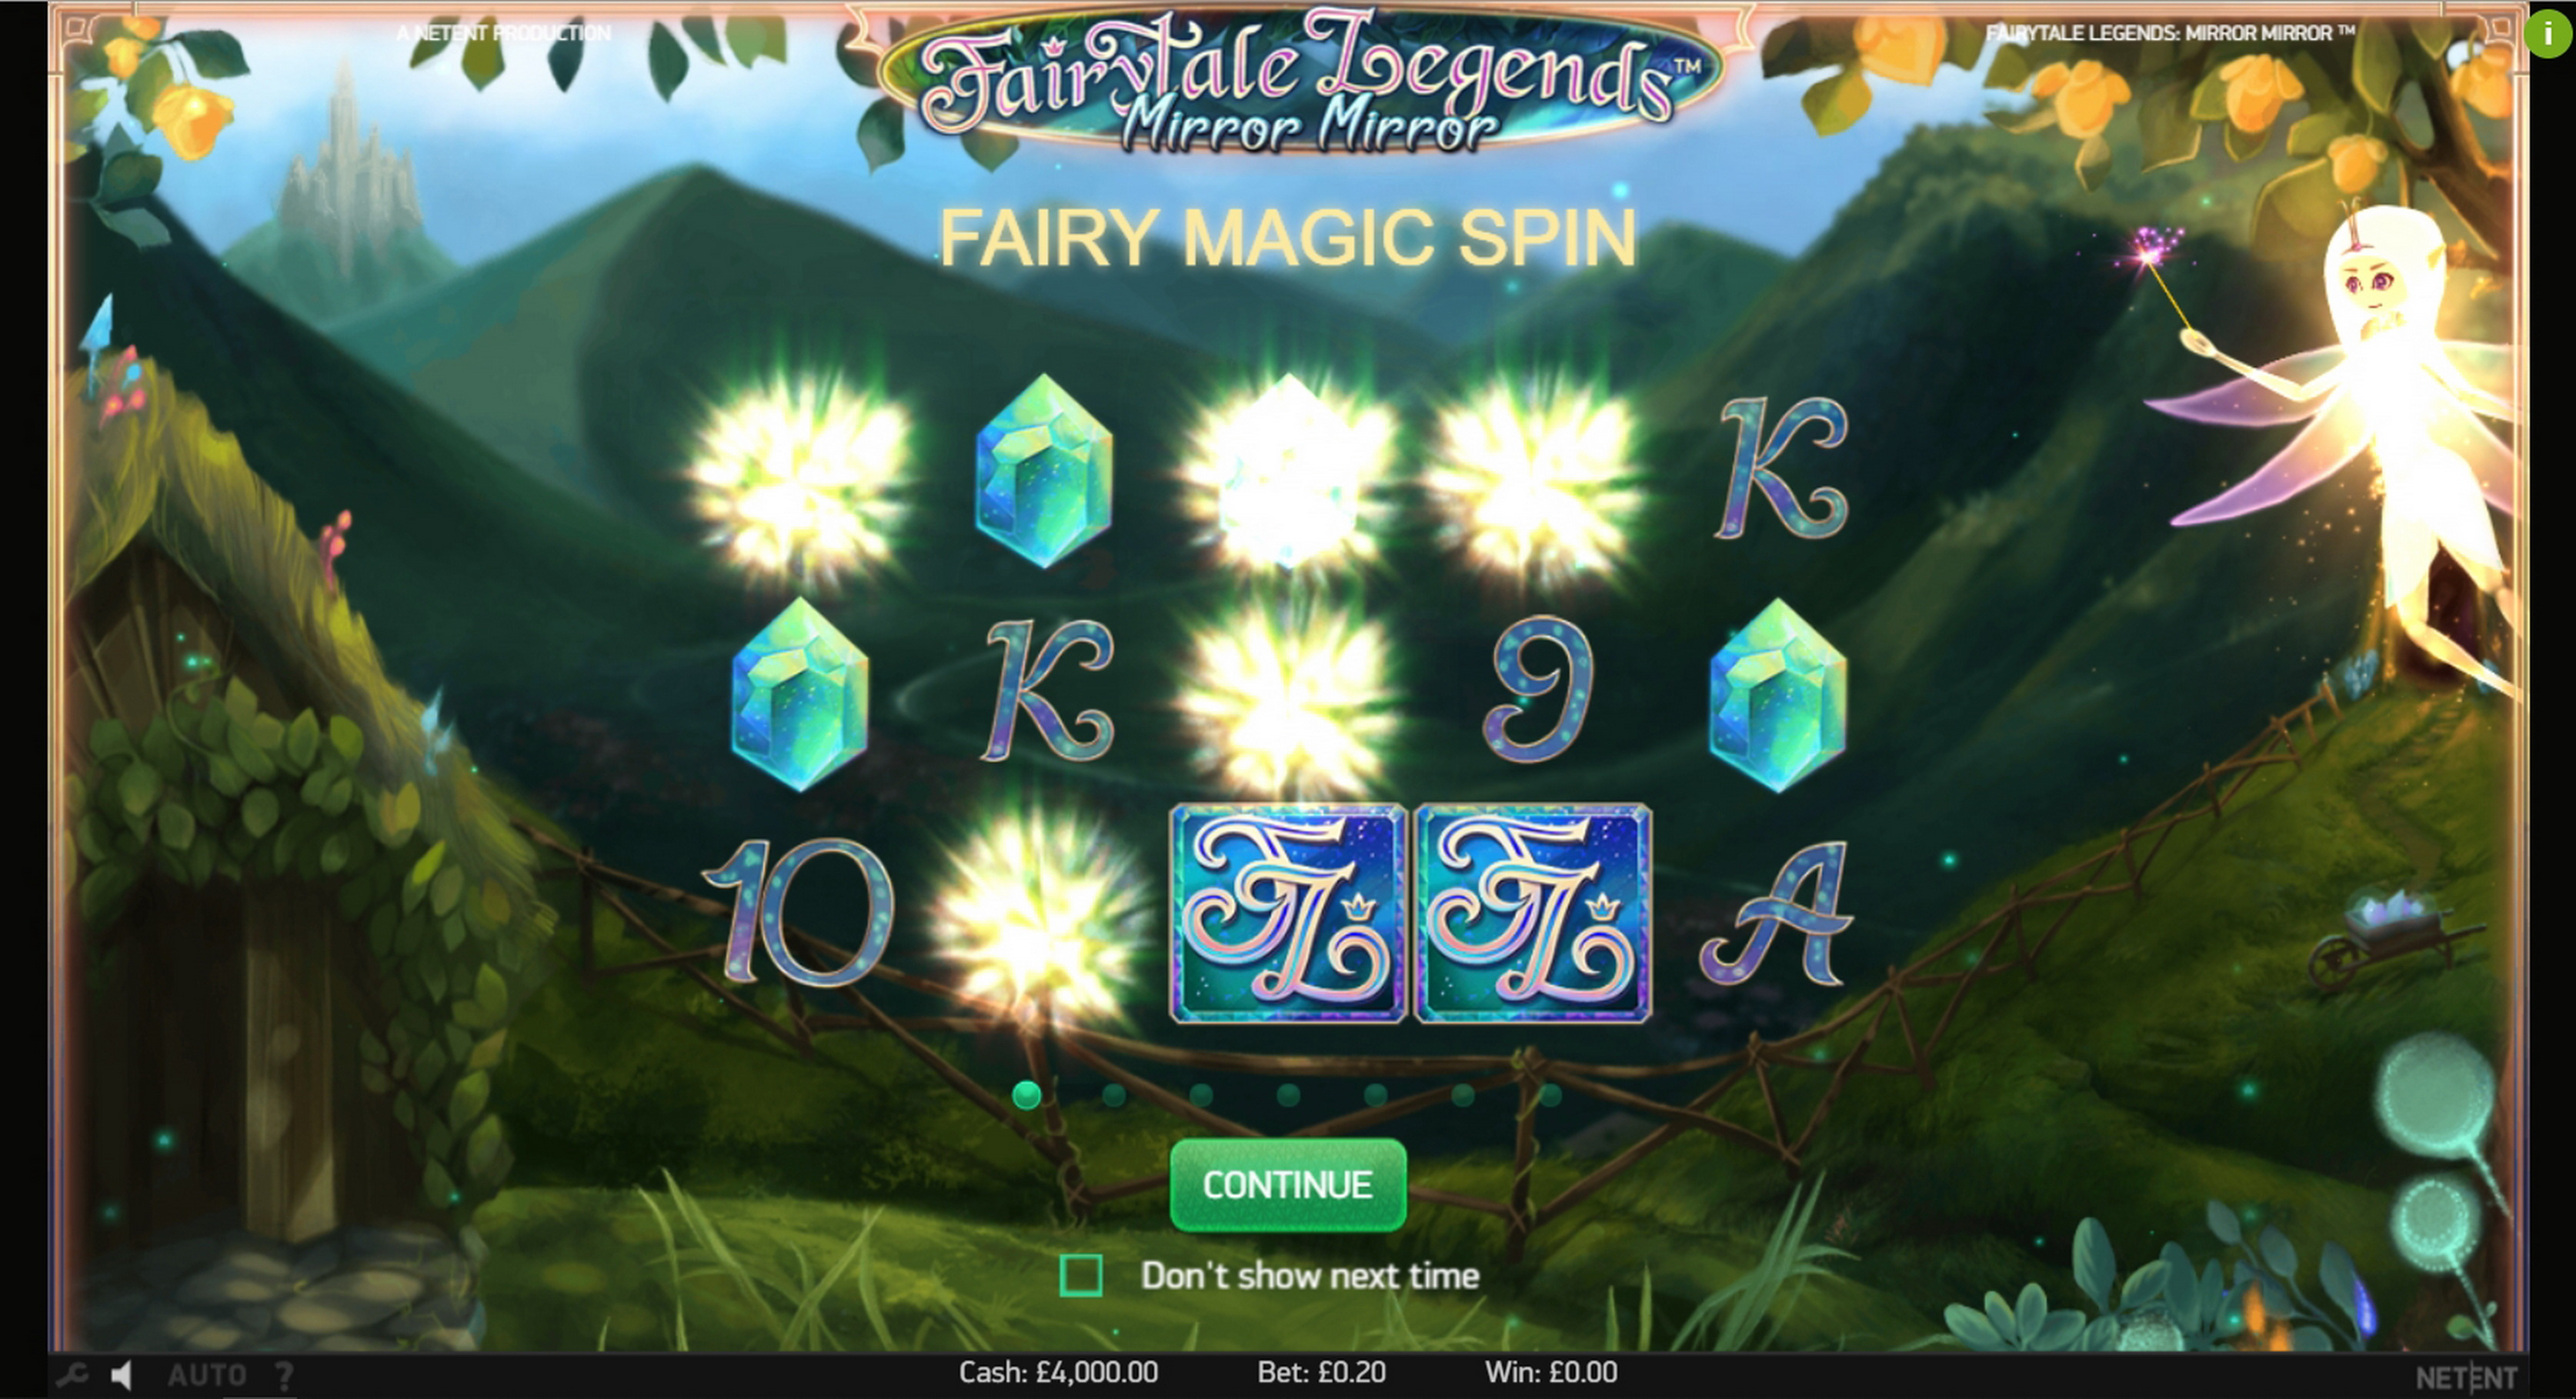 Play Fairytale Legends: Mirror Mirror (NetEnt) Free Casino Slot Game by NetEnt